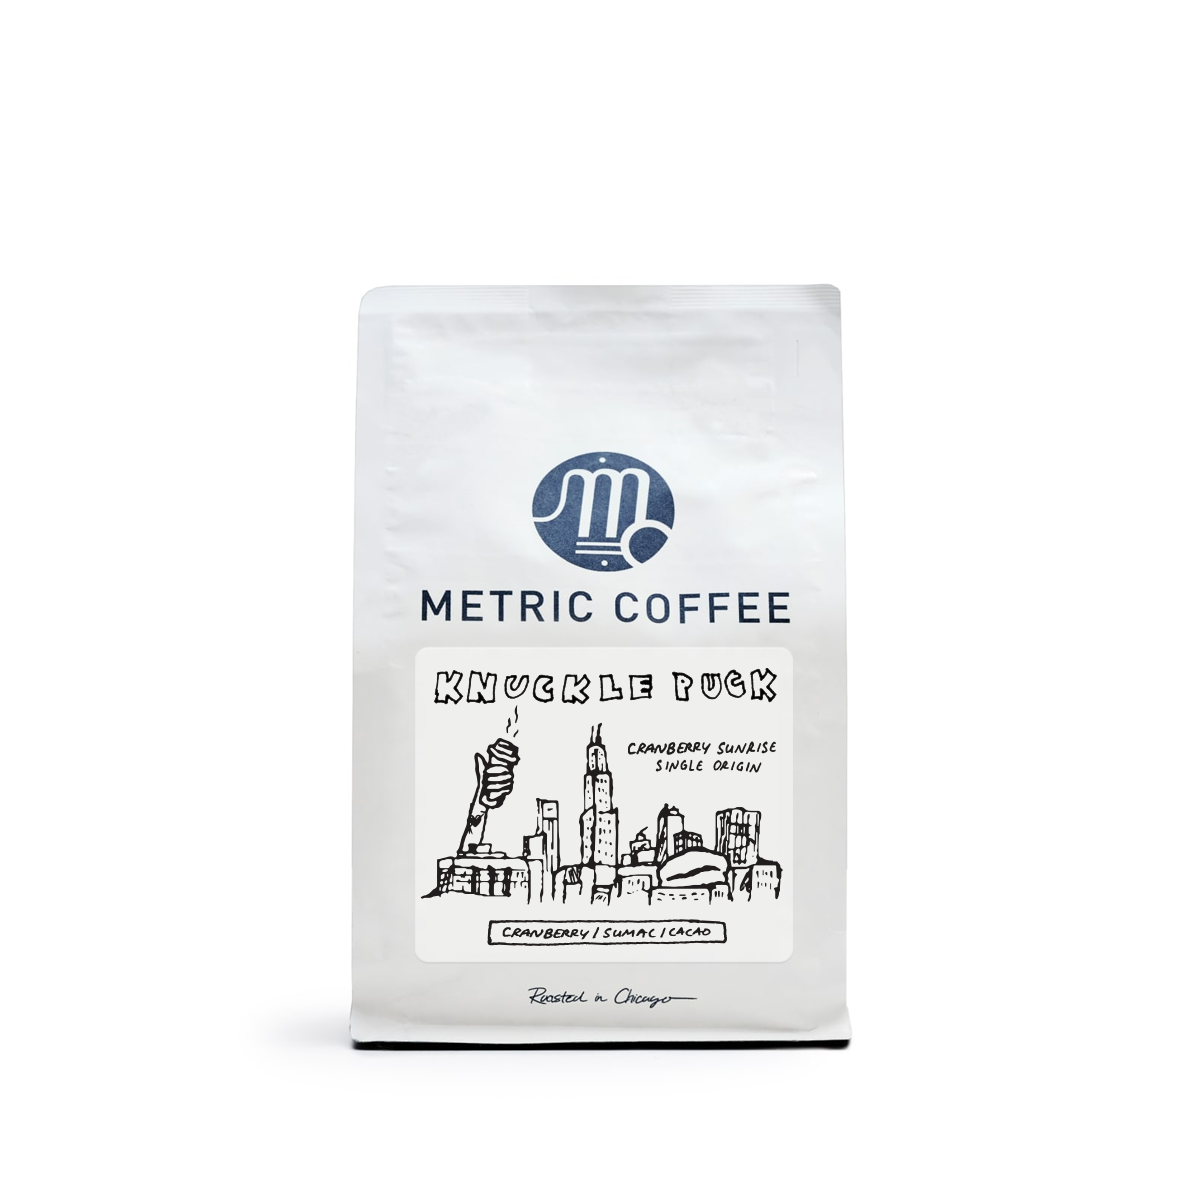 Metric x 20/20 Cranberry Sunrise Single Origin Coffee